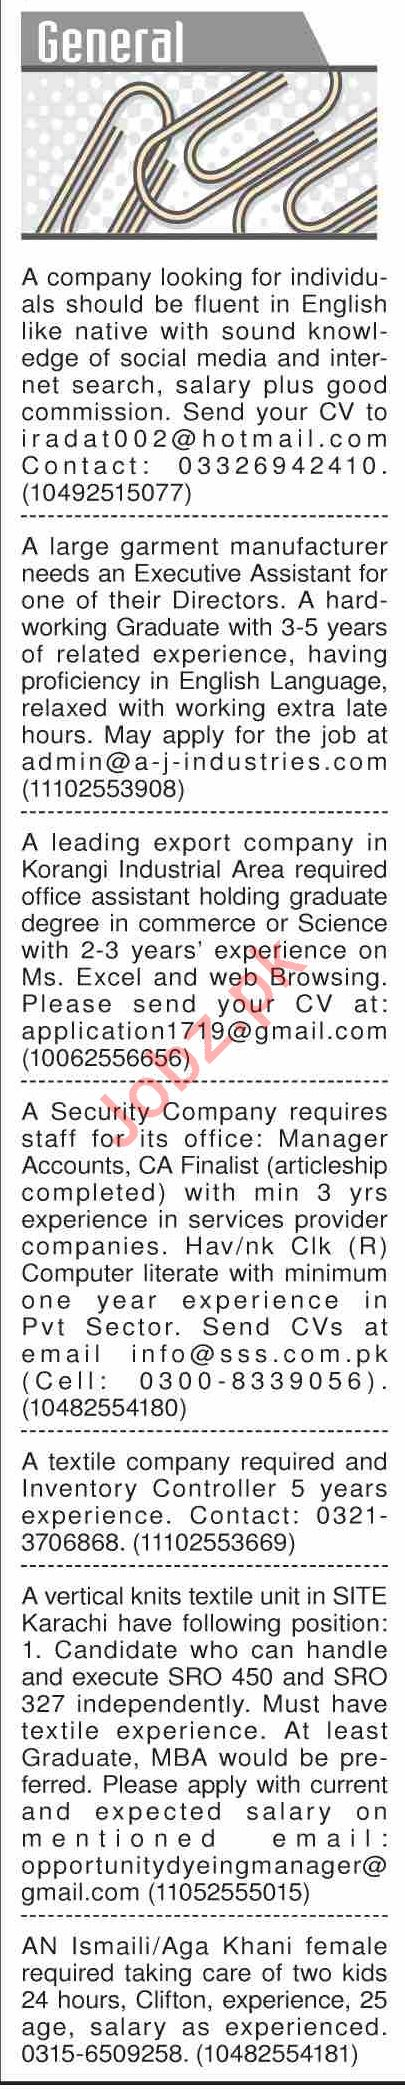 Dawn Sunday Classified Ads 21st July 2019 for General Staff